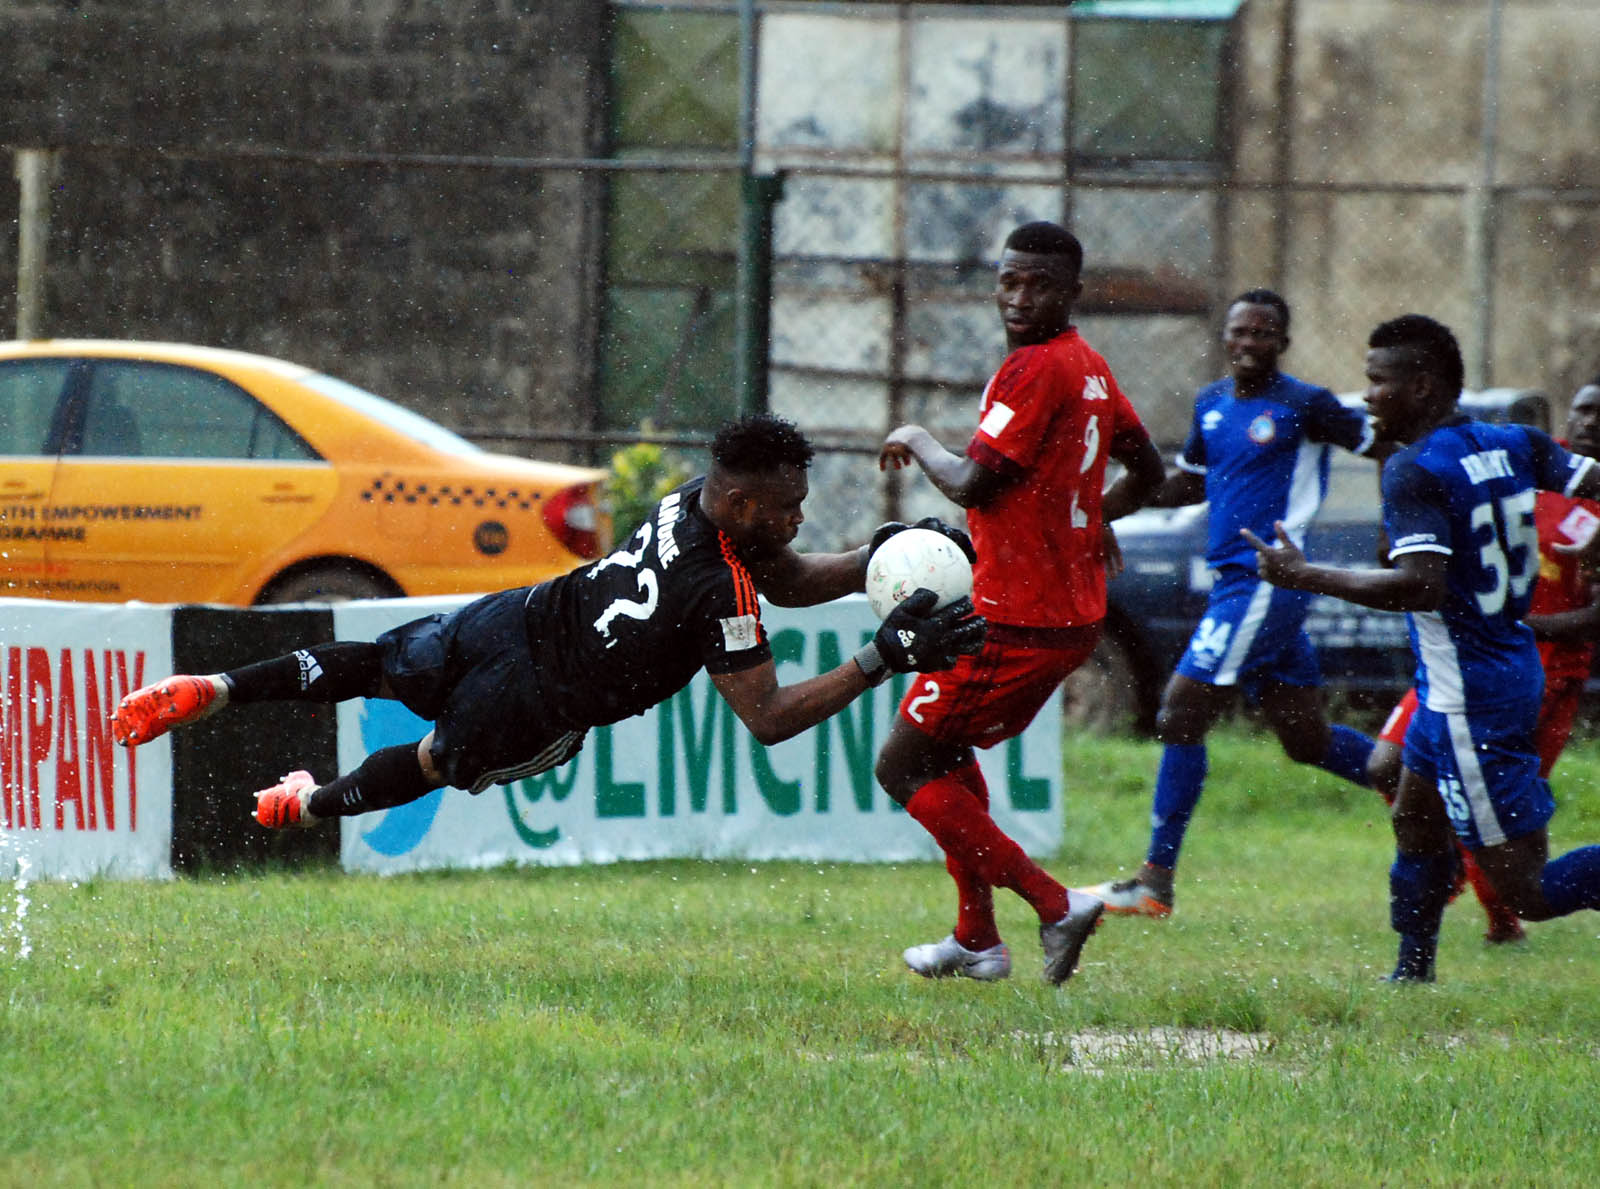 NPFL: Abia Warriors Beat Enyimba, Heartland Pip Tornadoes In Escape Bid